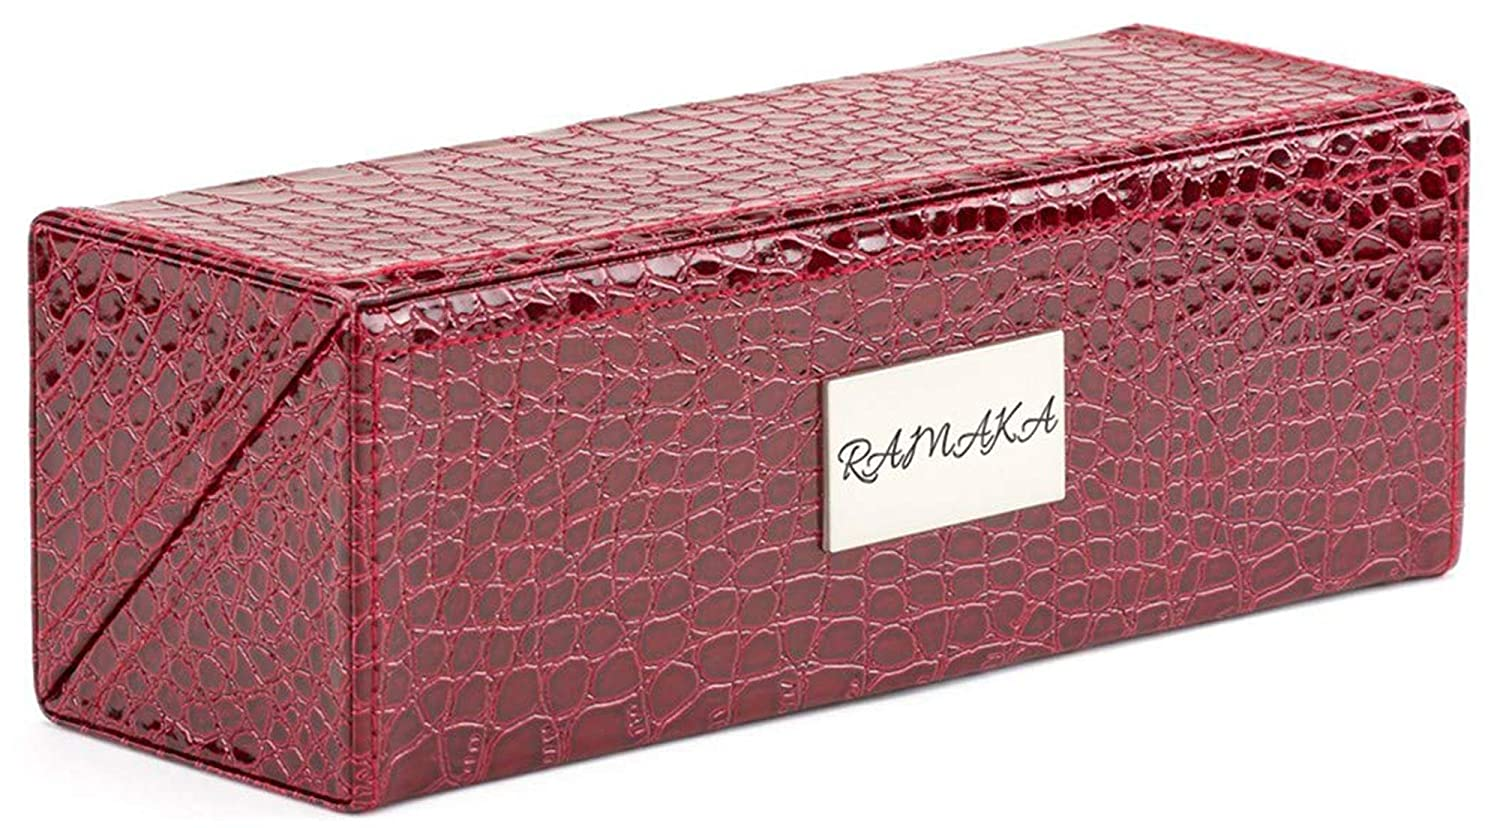 Makeup Brush Holder Box | Make Up Organizers and Storage by Ramaka Solutions | Professional Makeup Case Magnetic Closure | Faux Leather Cosmetic Organizer Decorative Boxes (9.25 X 3.25 Inches) Red